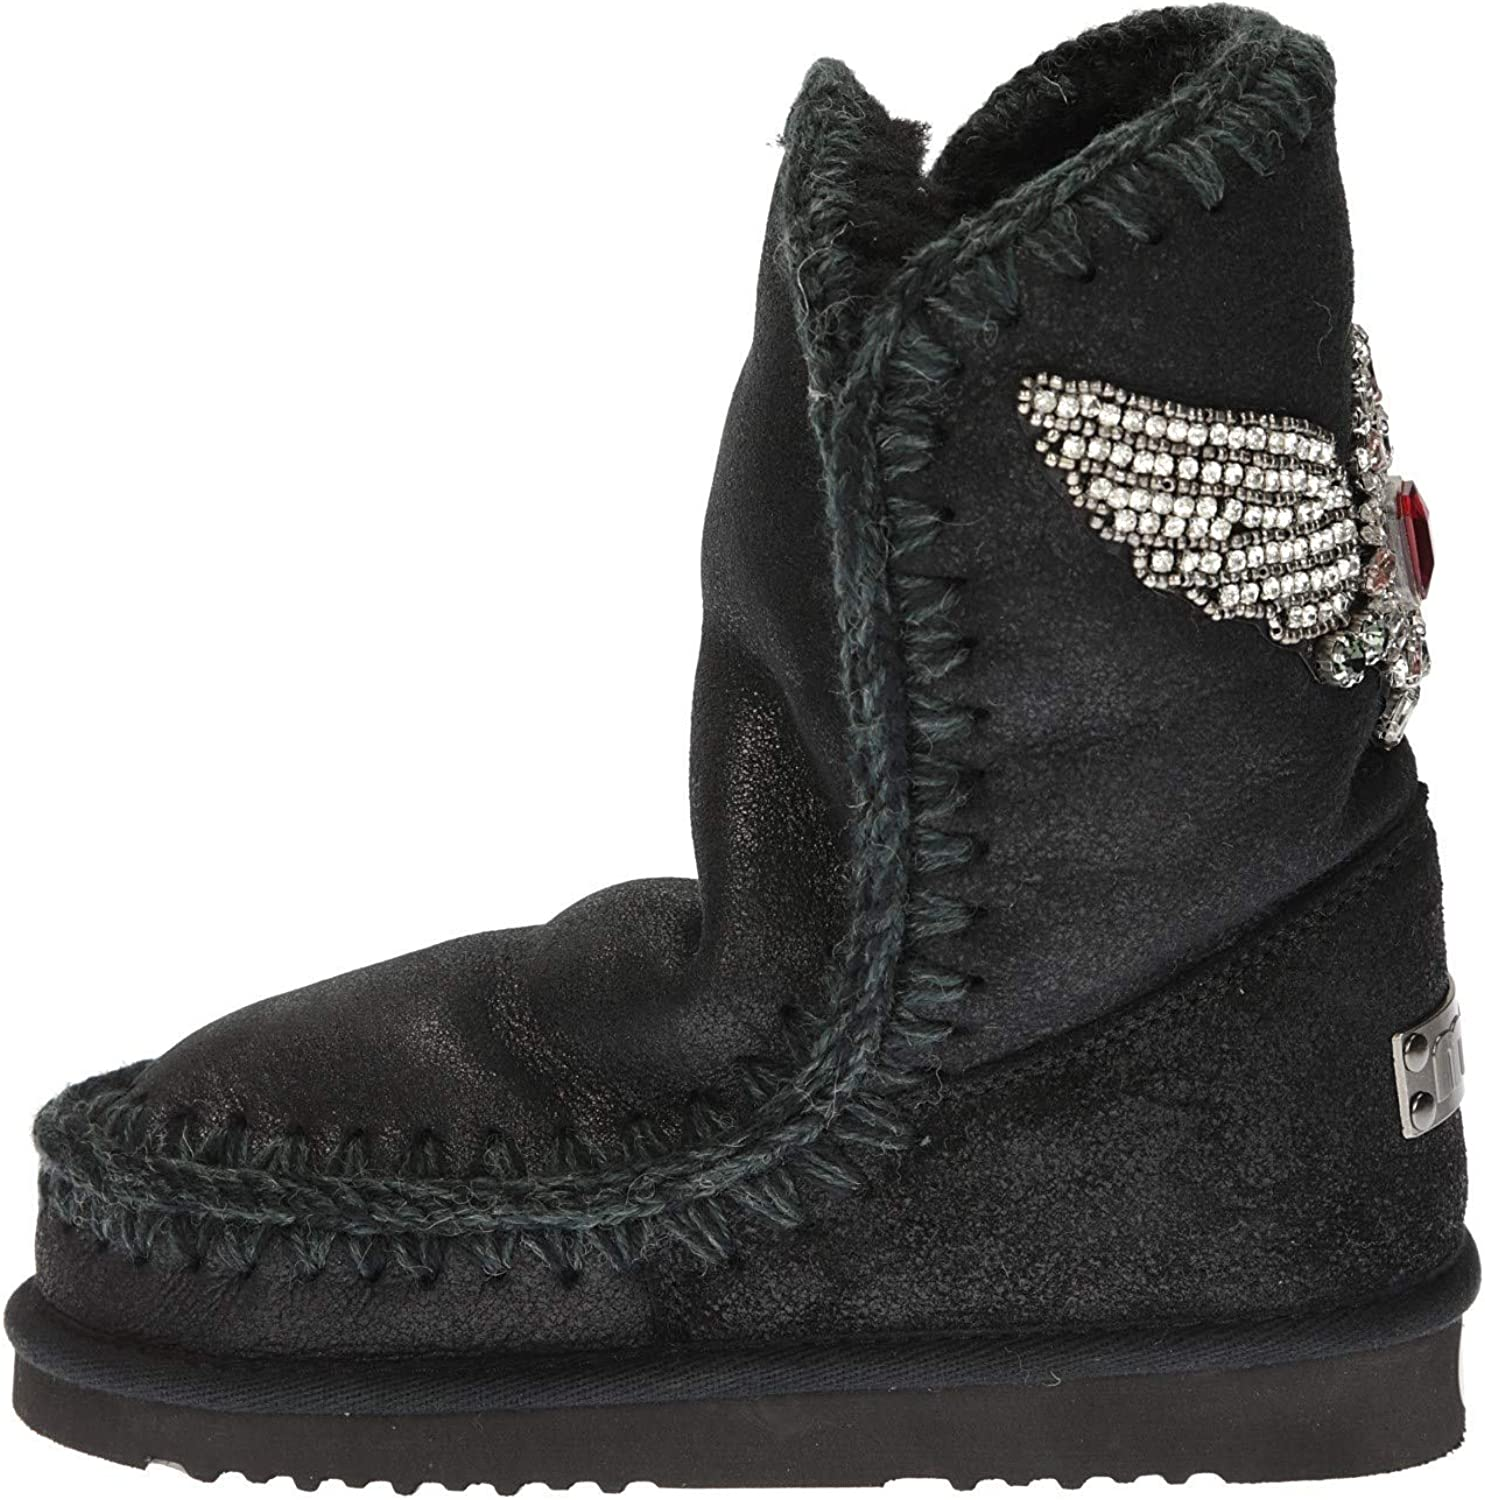 Mou Eskimo 24 Ankle Boot in Black Metallic Leather with Eagle 71pGbapf2CLUL1500_